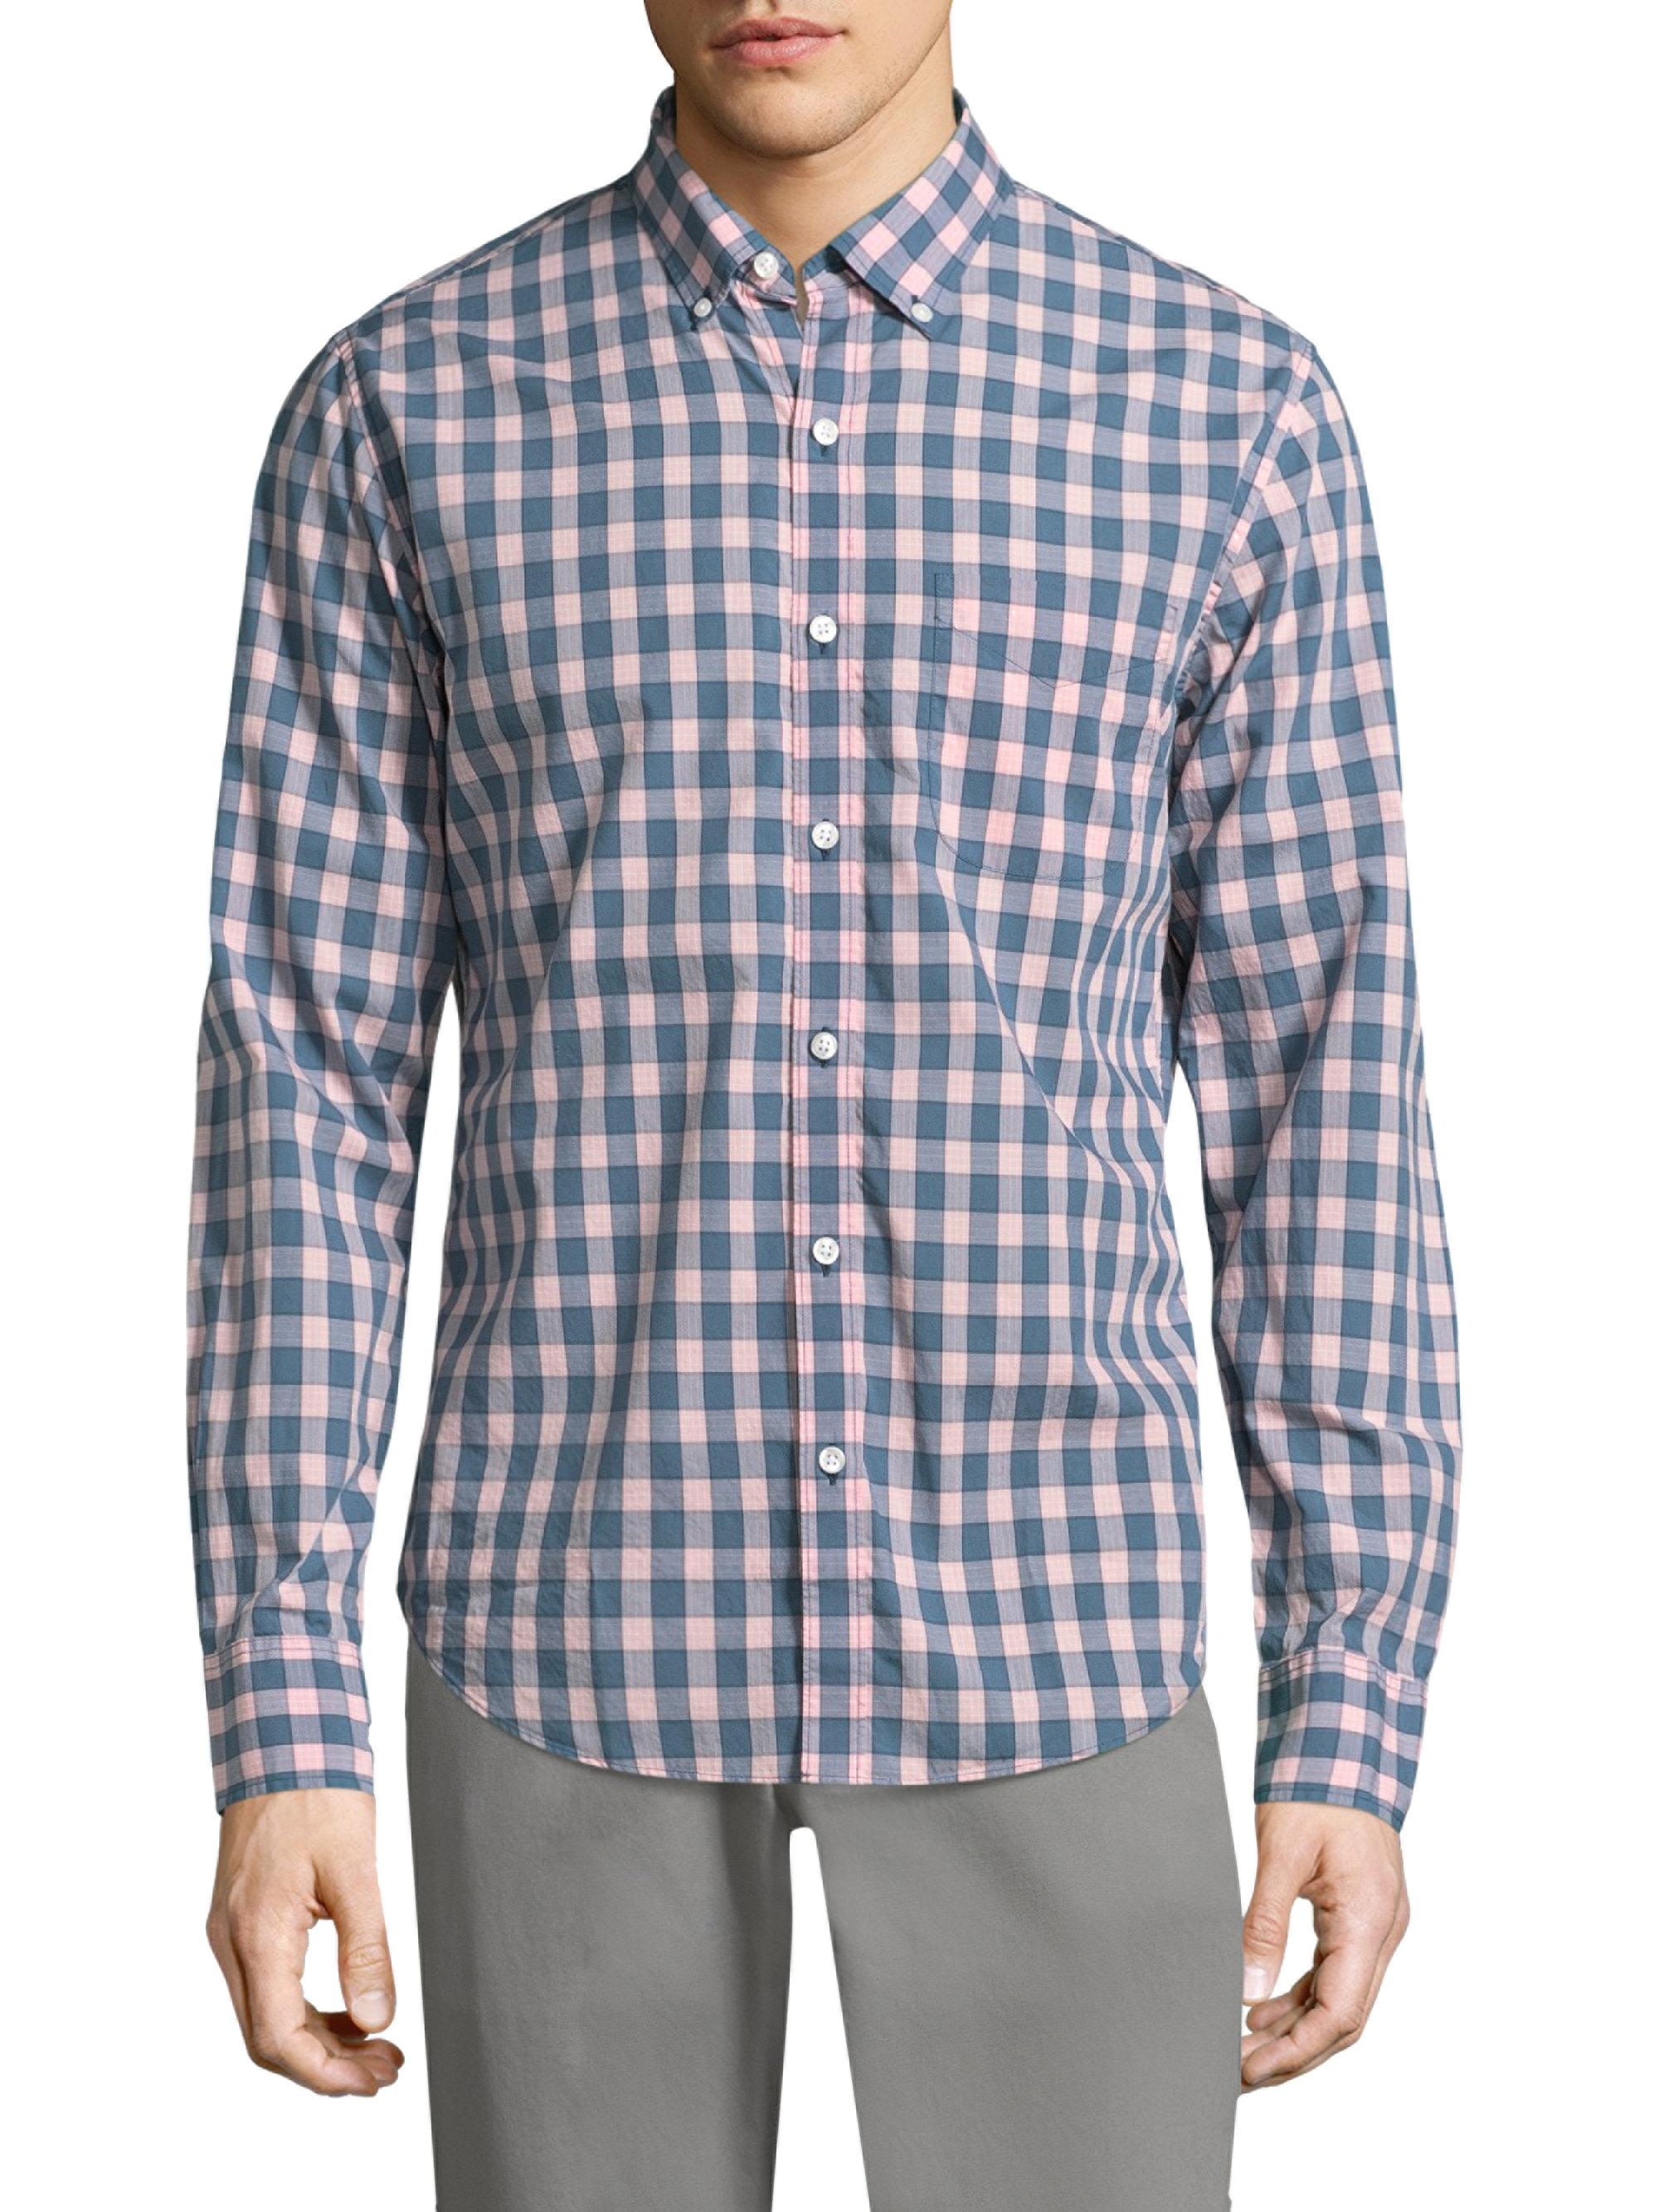 Lyst bonobos summerweight checkered cotton button down for Cotton button down shirts men